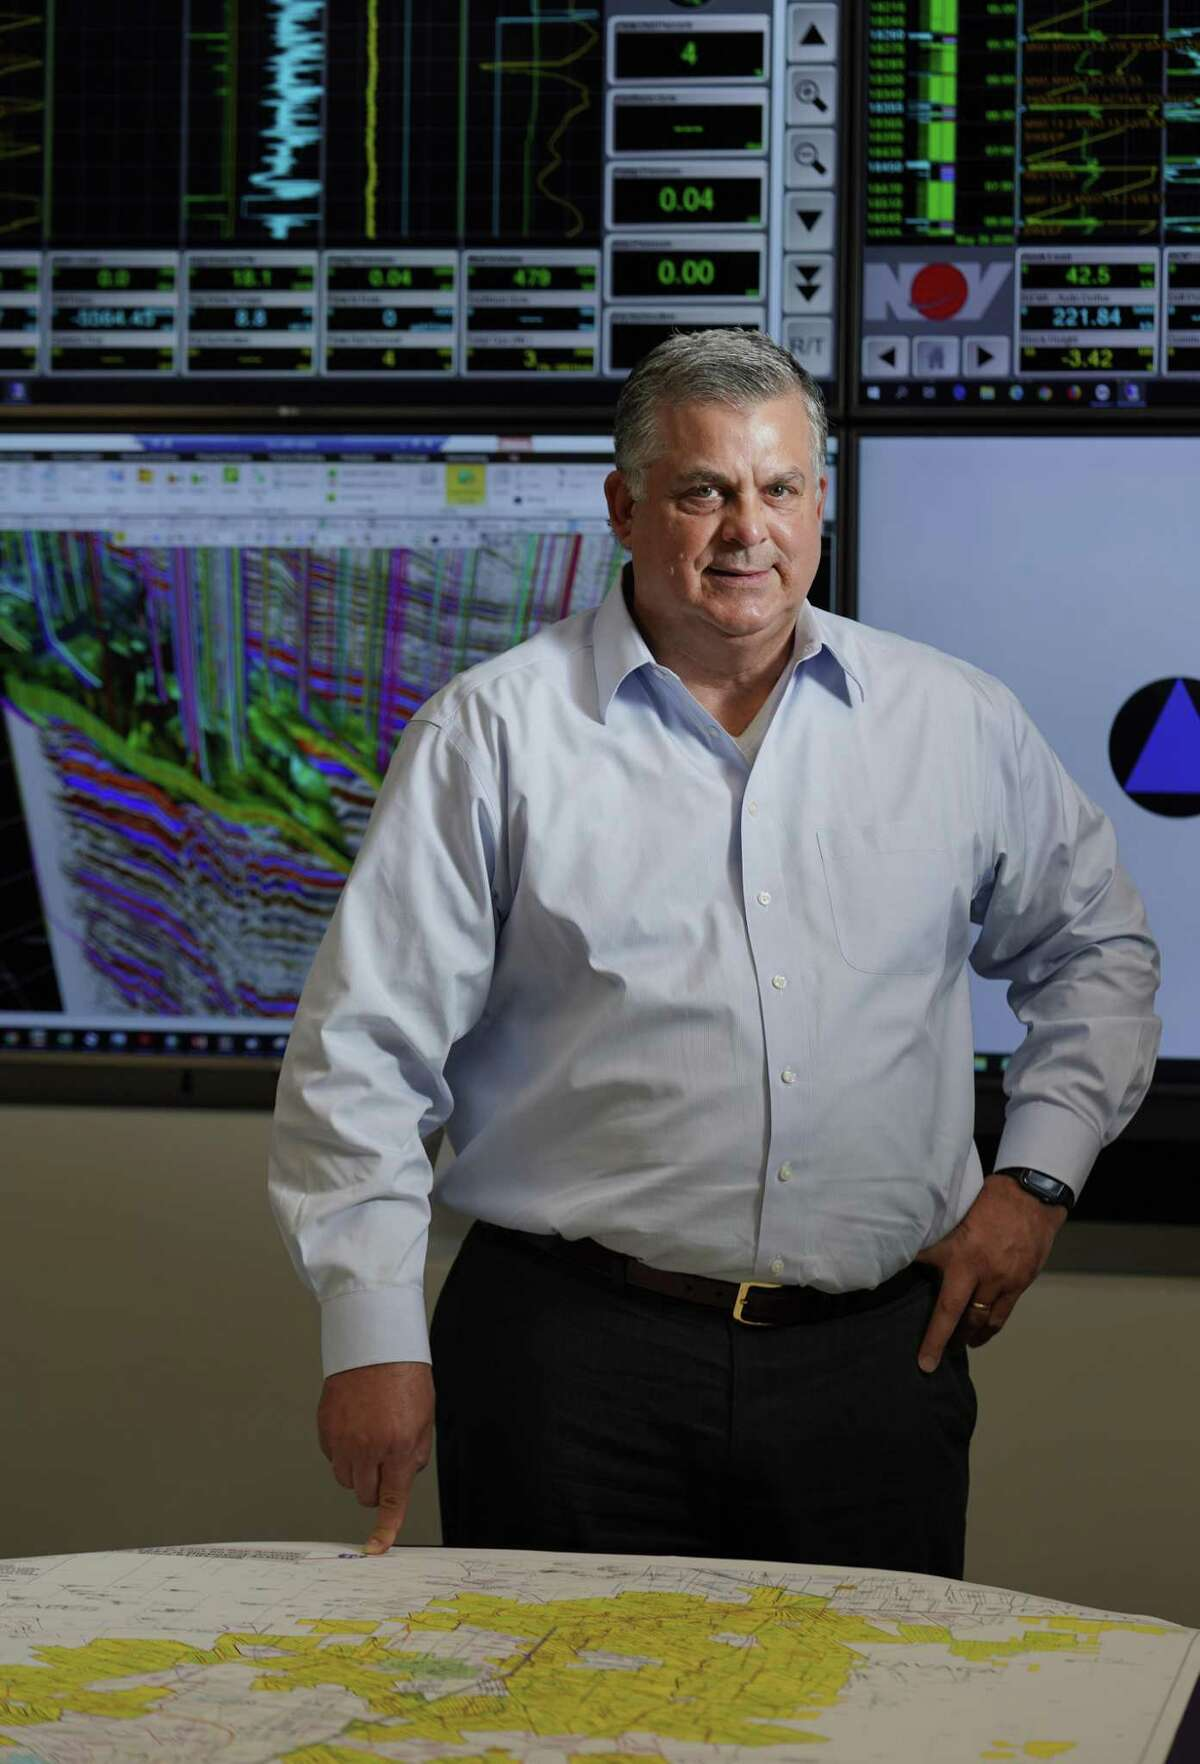 John A. Brooks, CEO of Houston-based oil producer Penn Virginia Corporation shown in May 2019 in Houston, says his entire team deserves the credit for the company emerging from bankruptcy a few years ago to become a small yet highly profitable shale producer.